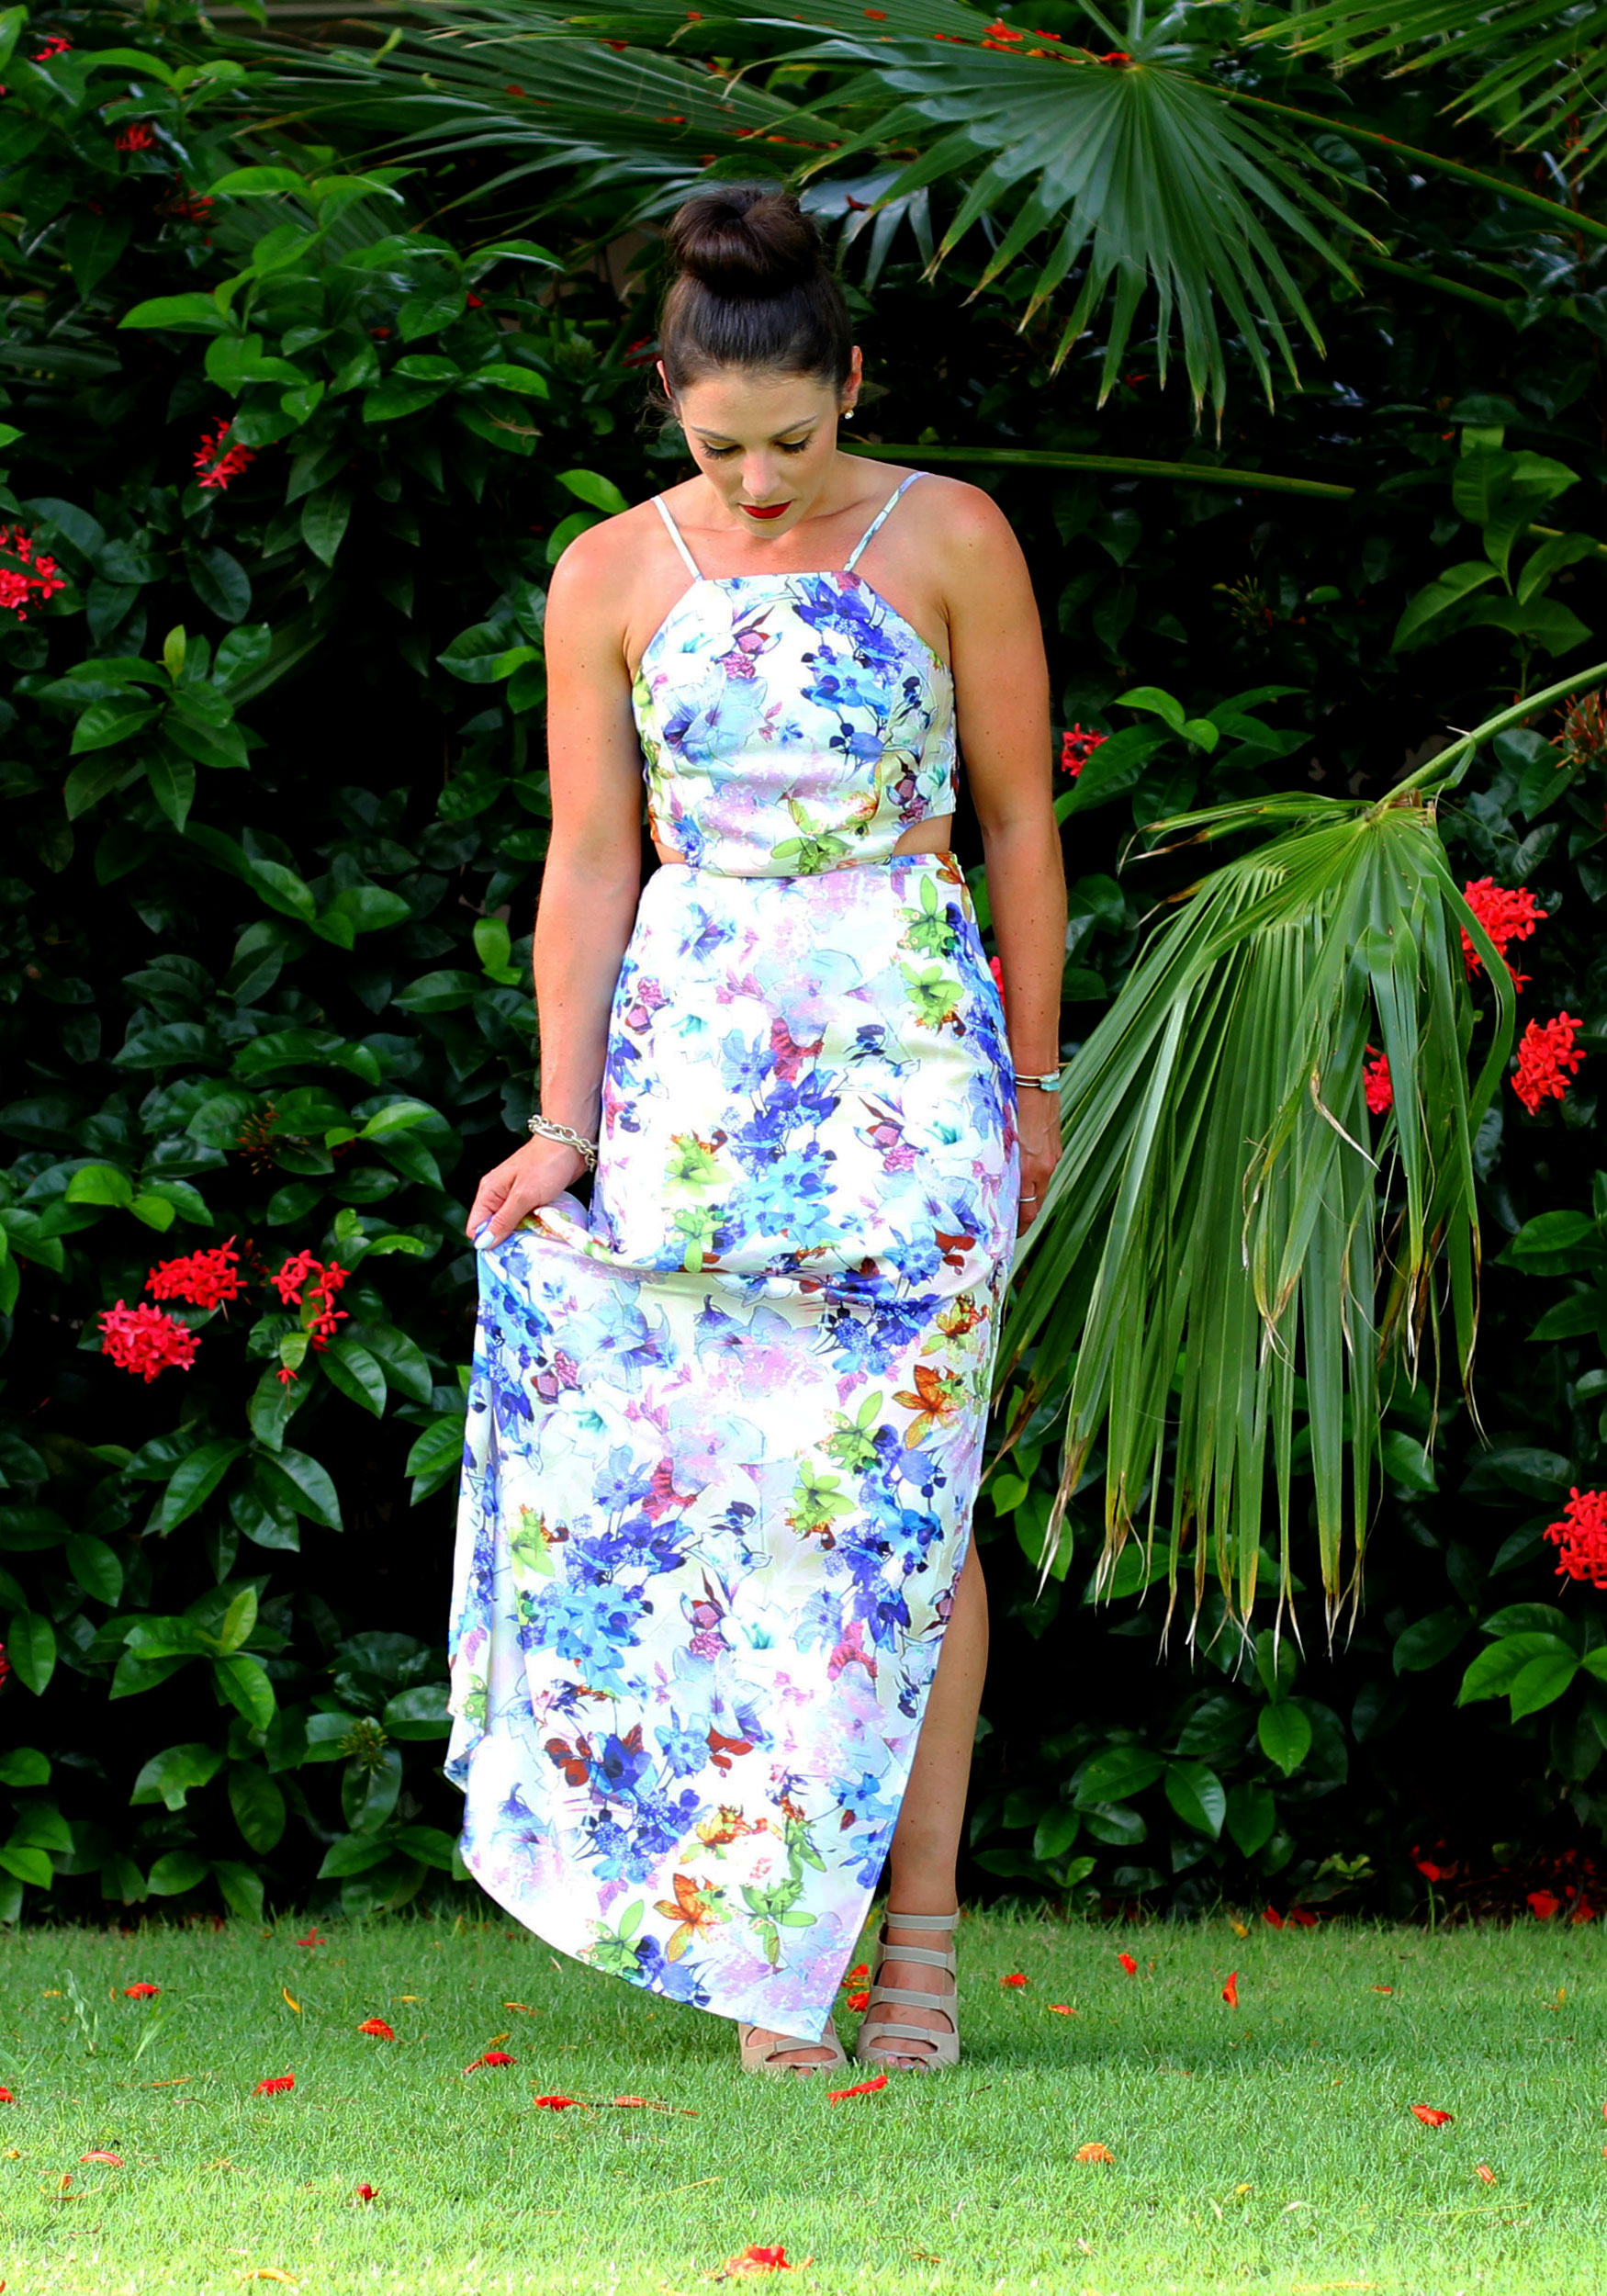 JOA Floral Maxi Dress, Summer Style, Just One Answer, Vacation Fashion, Tropical, Fashion Blogger, Top Knot, Rebecca Minkoff Fringe Mini MAC, David Yurman Bracelet